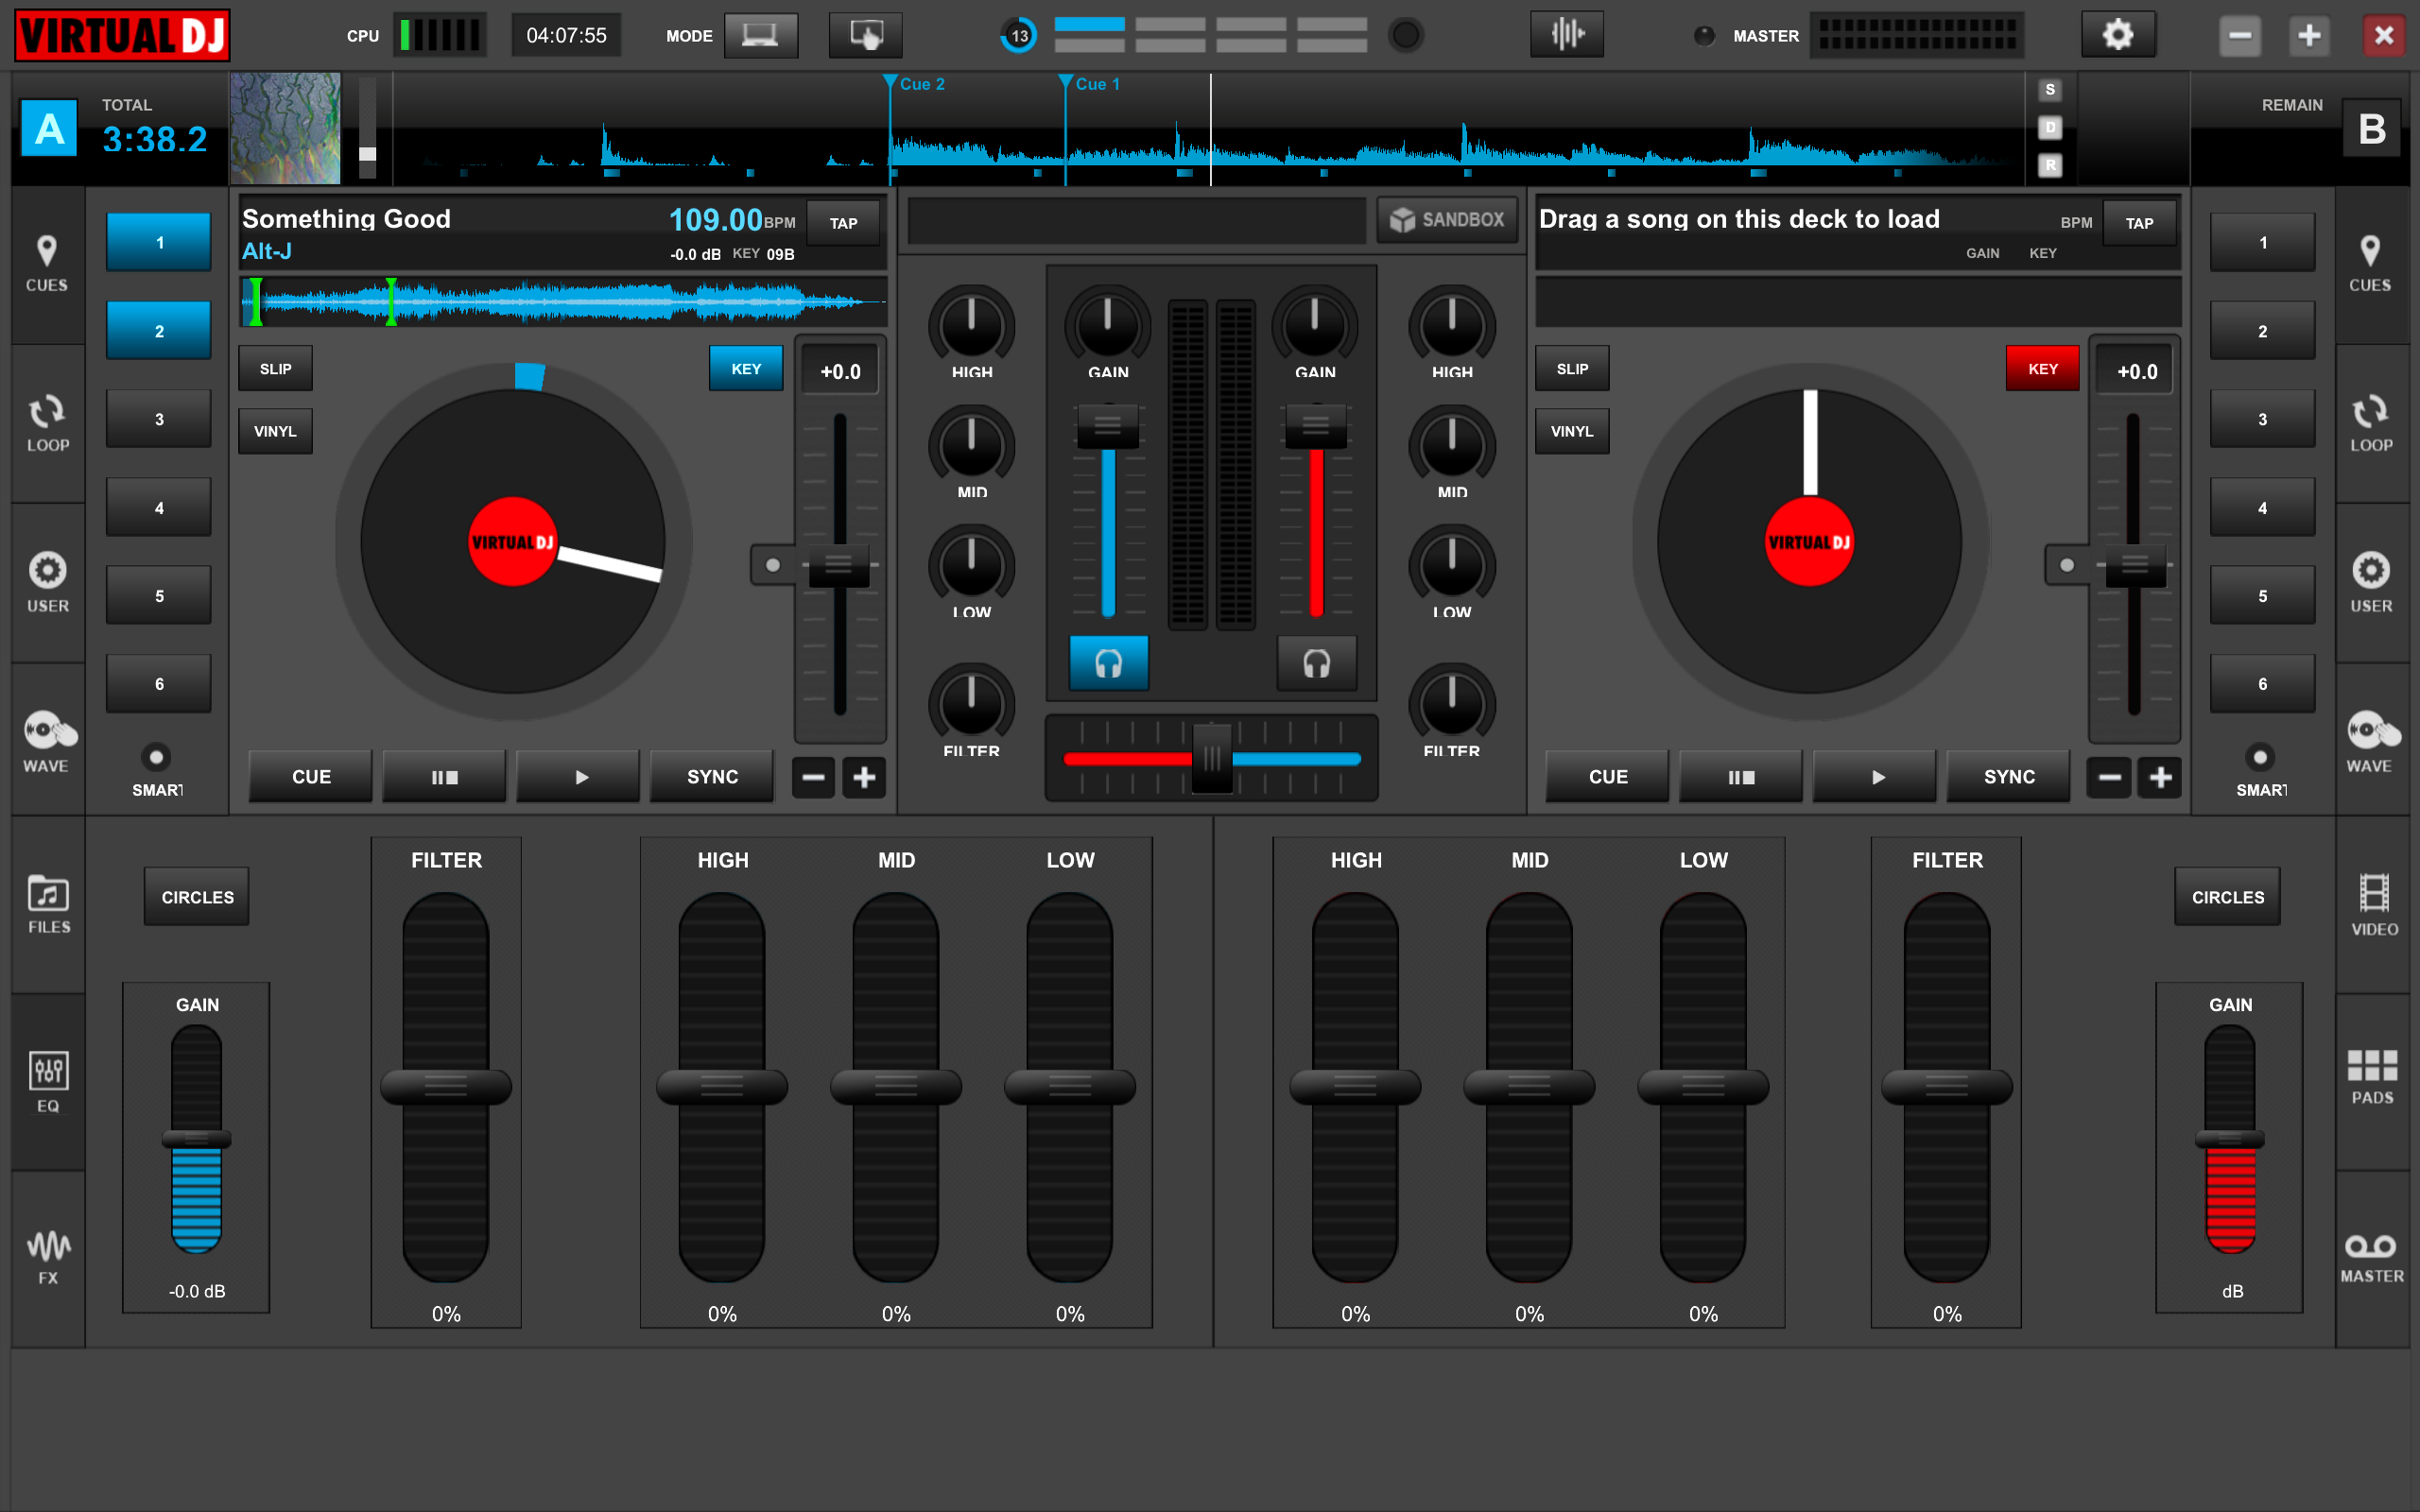 Virtual dj songs mixer equalizer for android apk download.